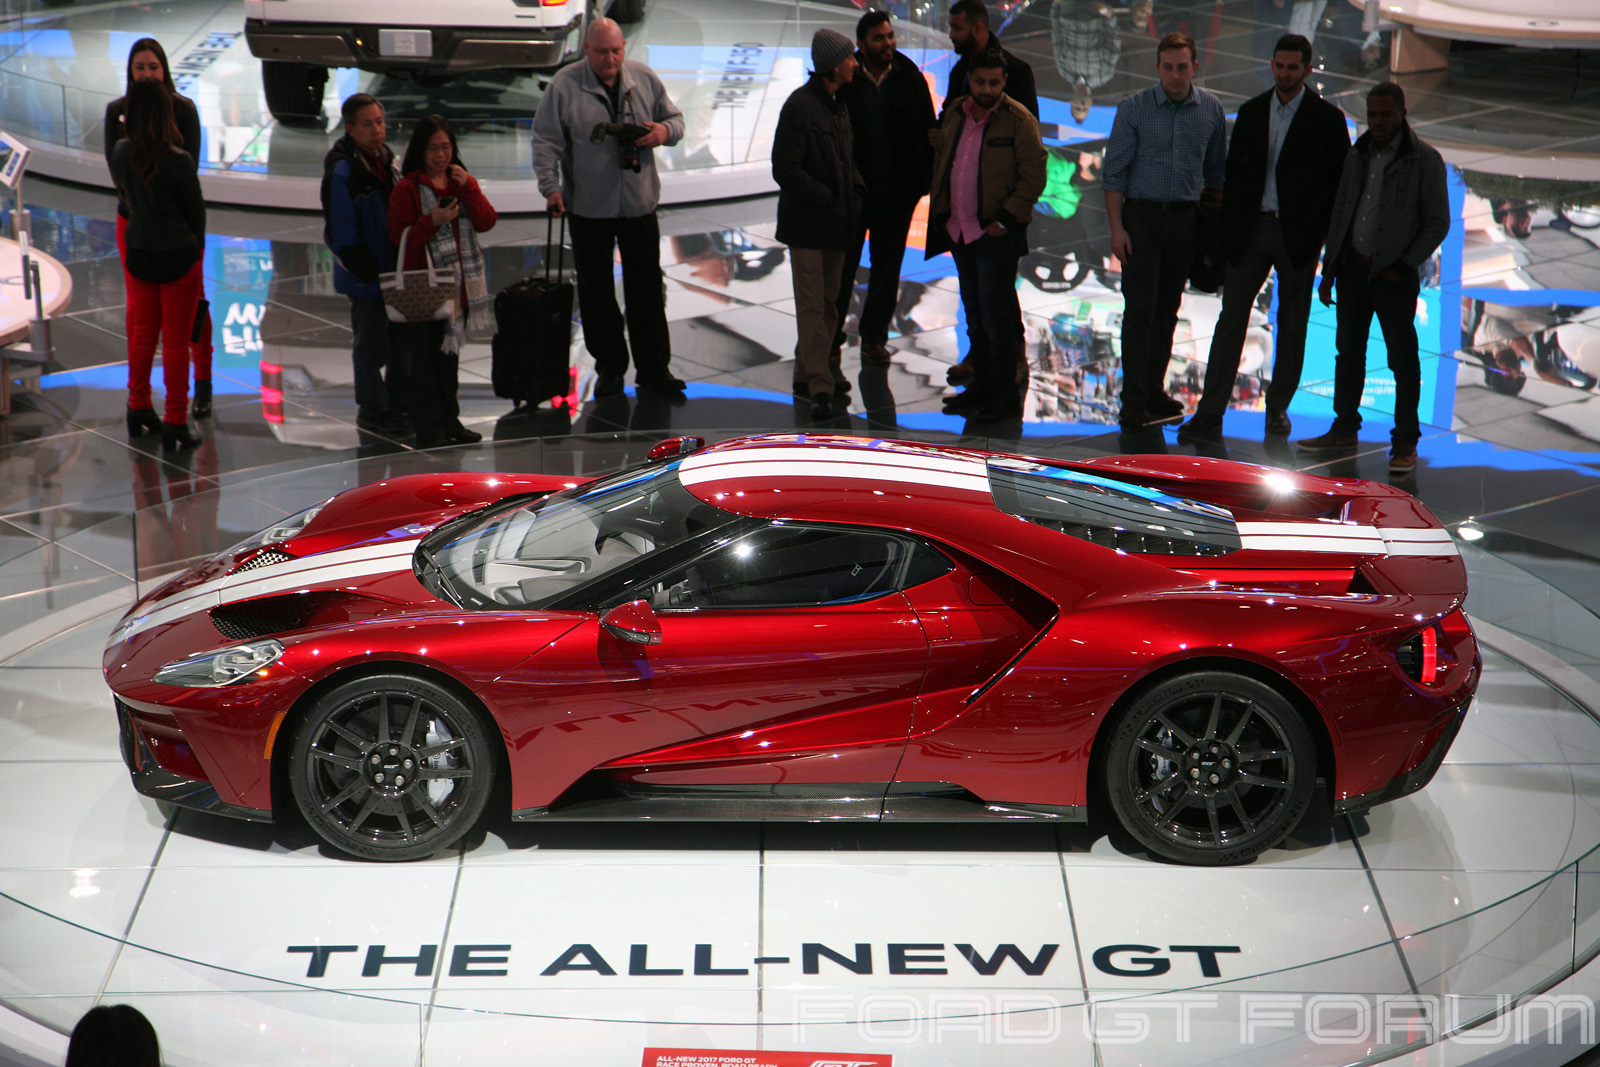 Ford-GT-Autoshow-3000-10